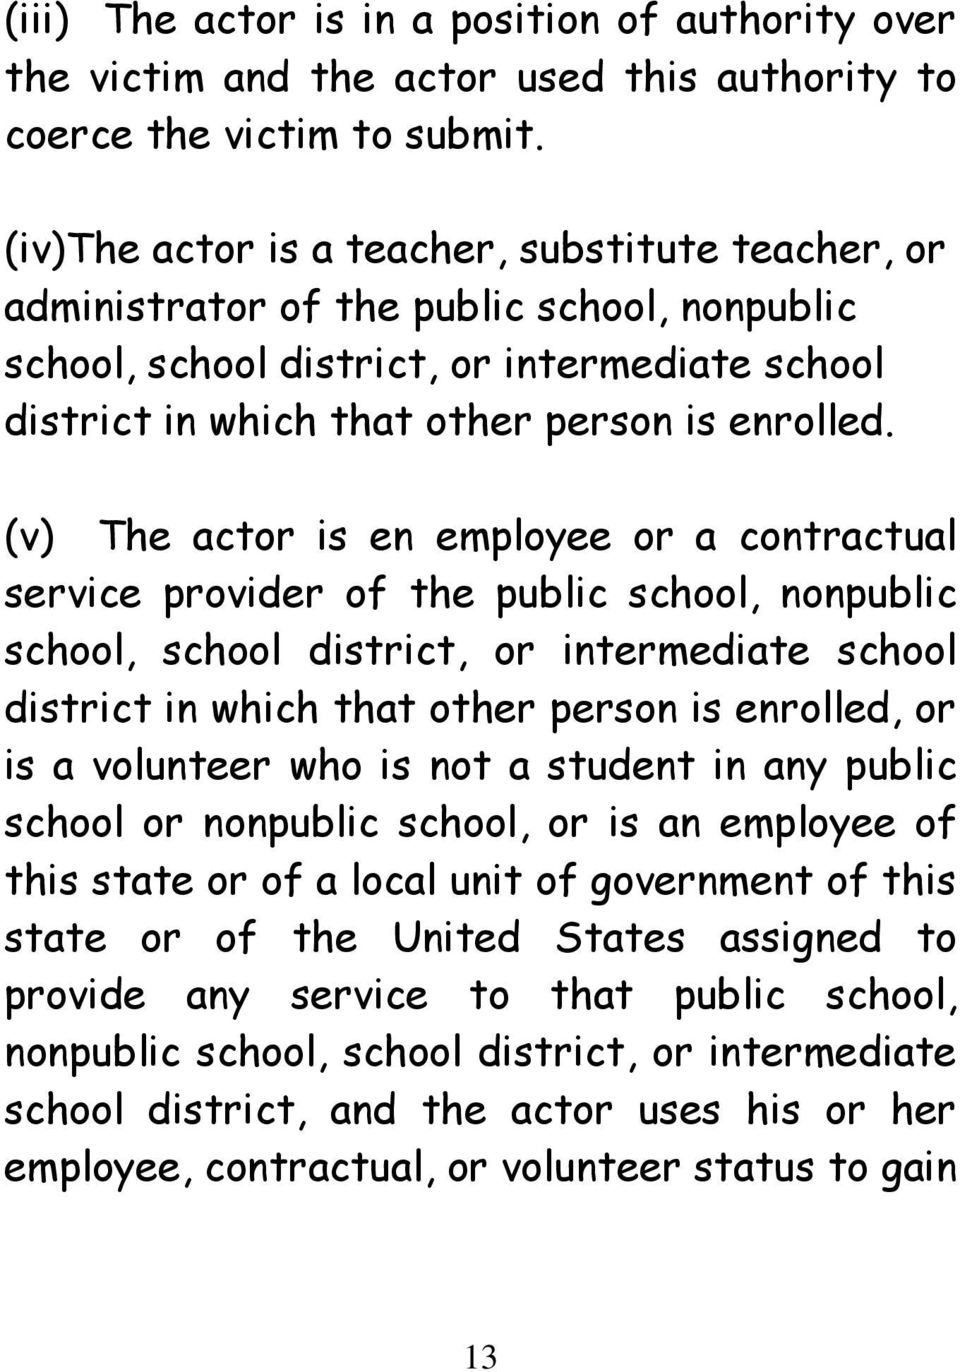 (v) The actor is en employee or a contractual service provider of the public school, nonpublic school, school district, or intermediate school district in which that other person is enrolled, or is a